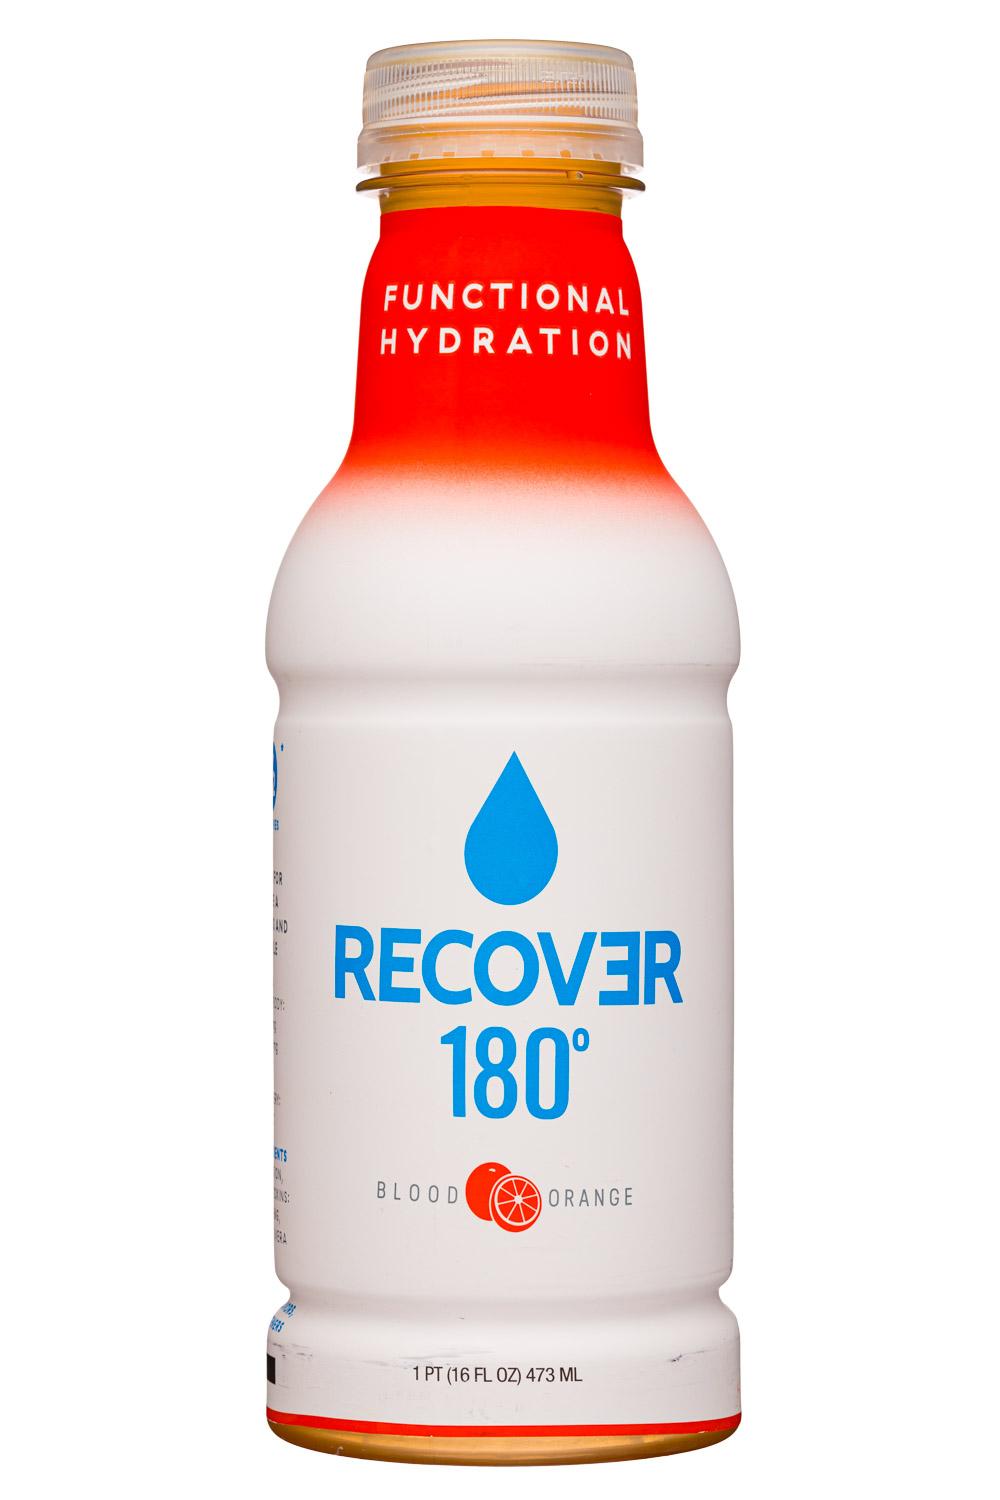 Recover 180°: Recover180-16oz-Hydration-BloodOrange-Front